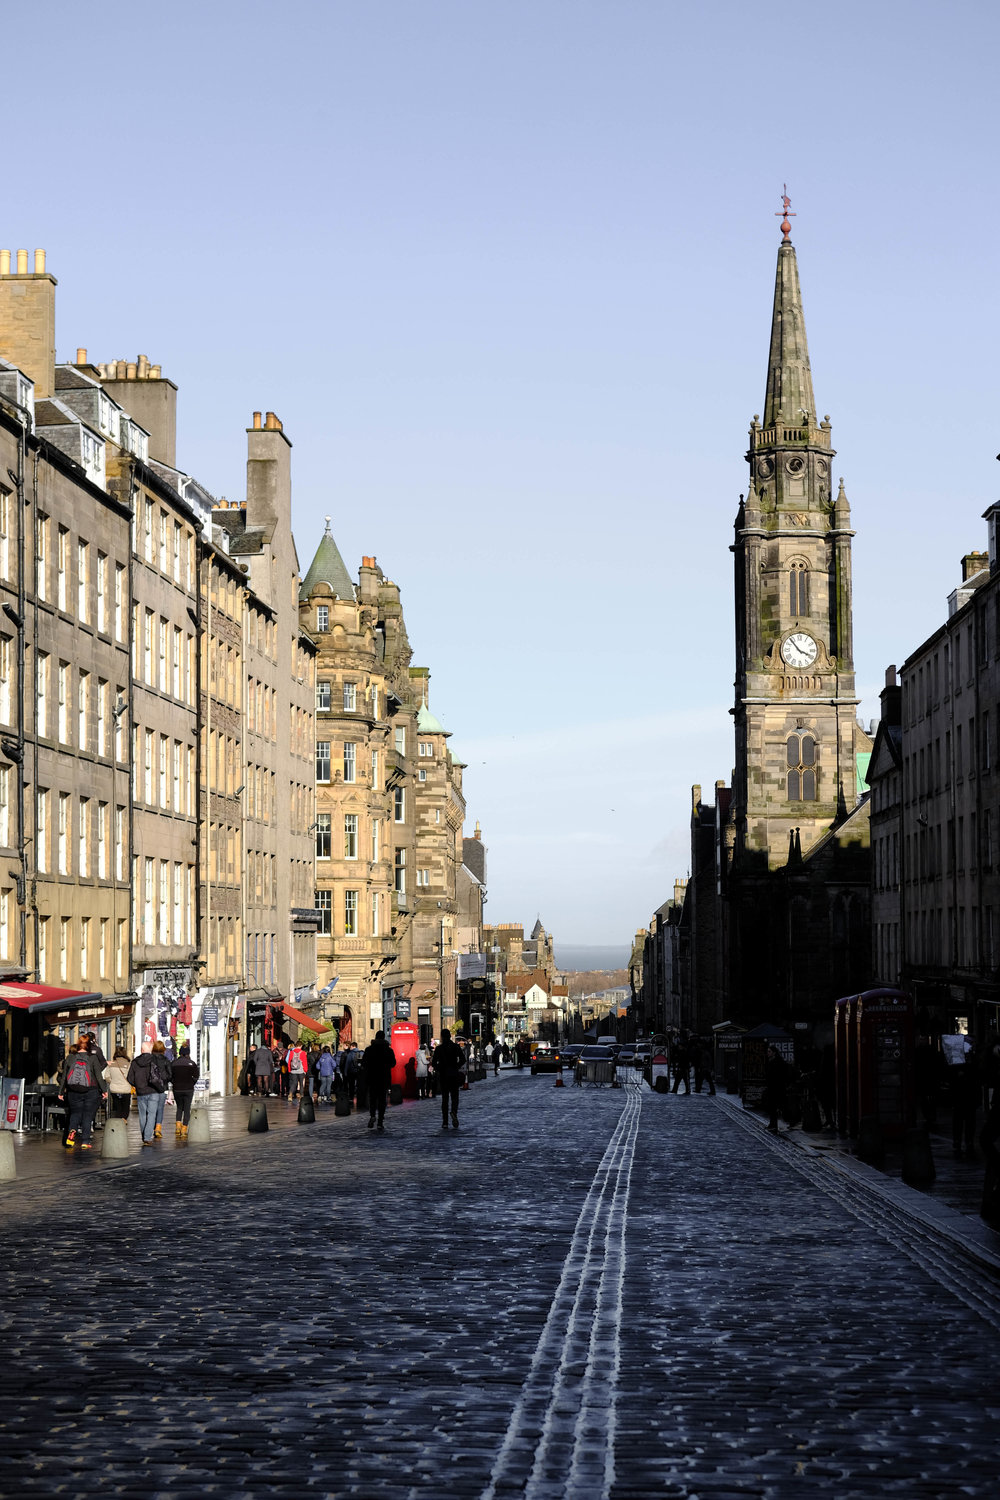 "<p style=""font-family:brandon-grotesque;font-weight:500; font-size:11px; text-center:left; color:light grey;letter-spacing: 1px"">MARCH 19, 2017 • OLD WORLD CHARM • 📍 Edinburgh, Scotland</p>"